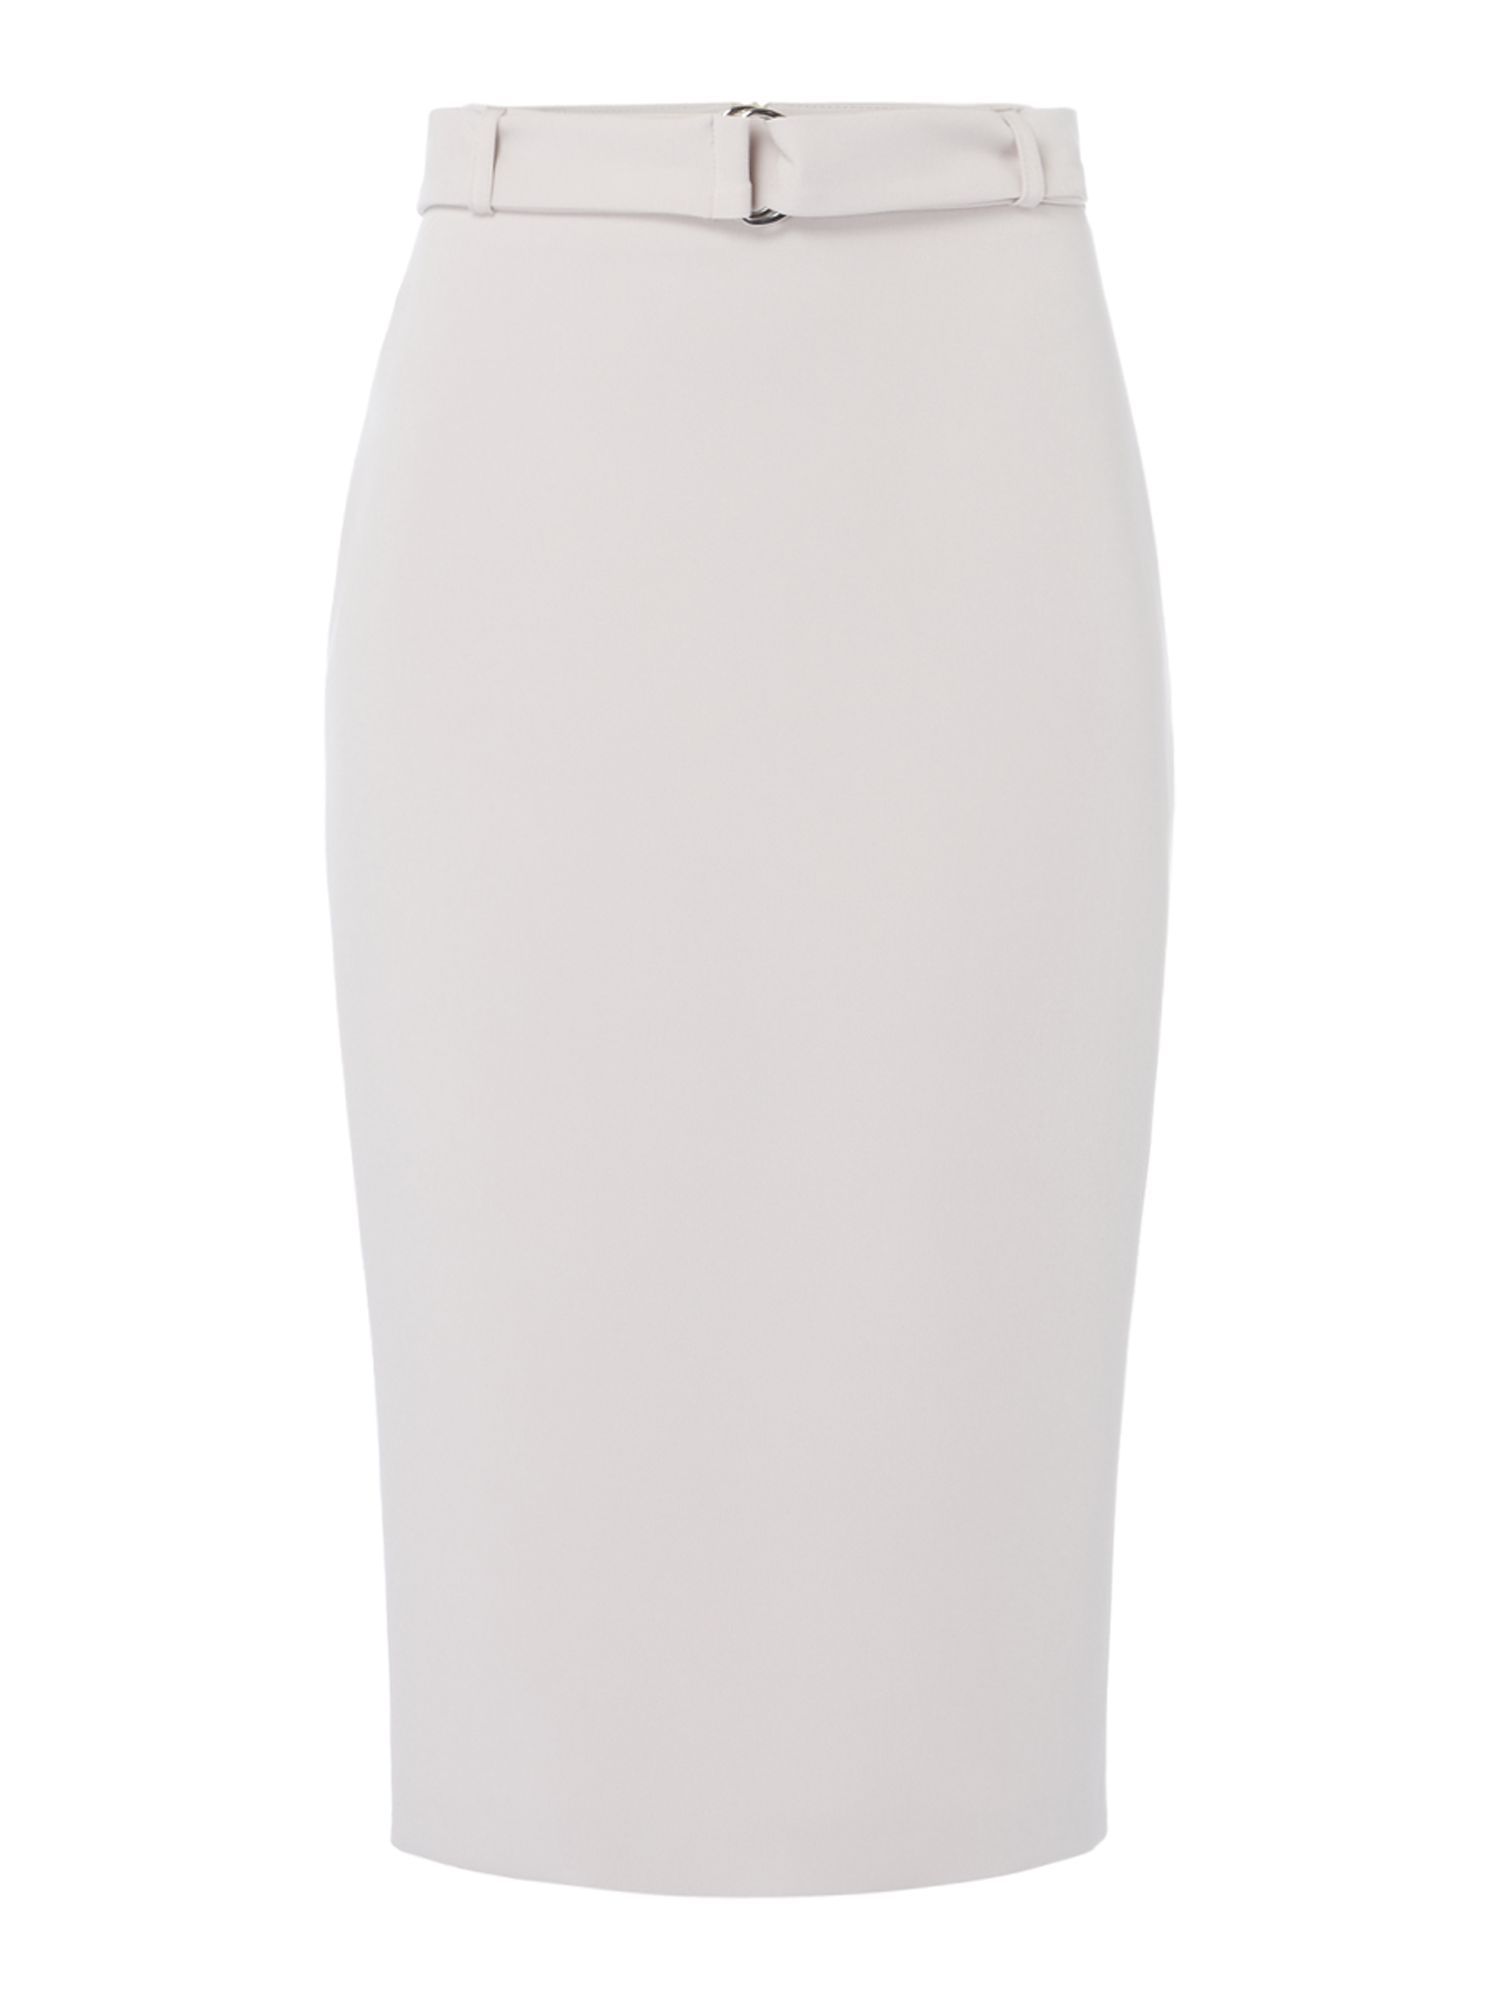 Linea Lilah pencil skirt, Grey